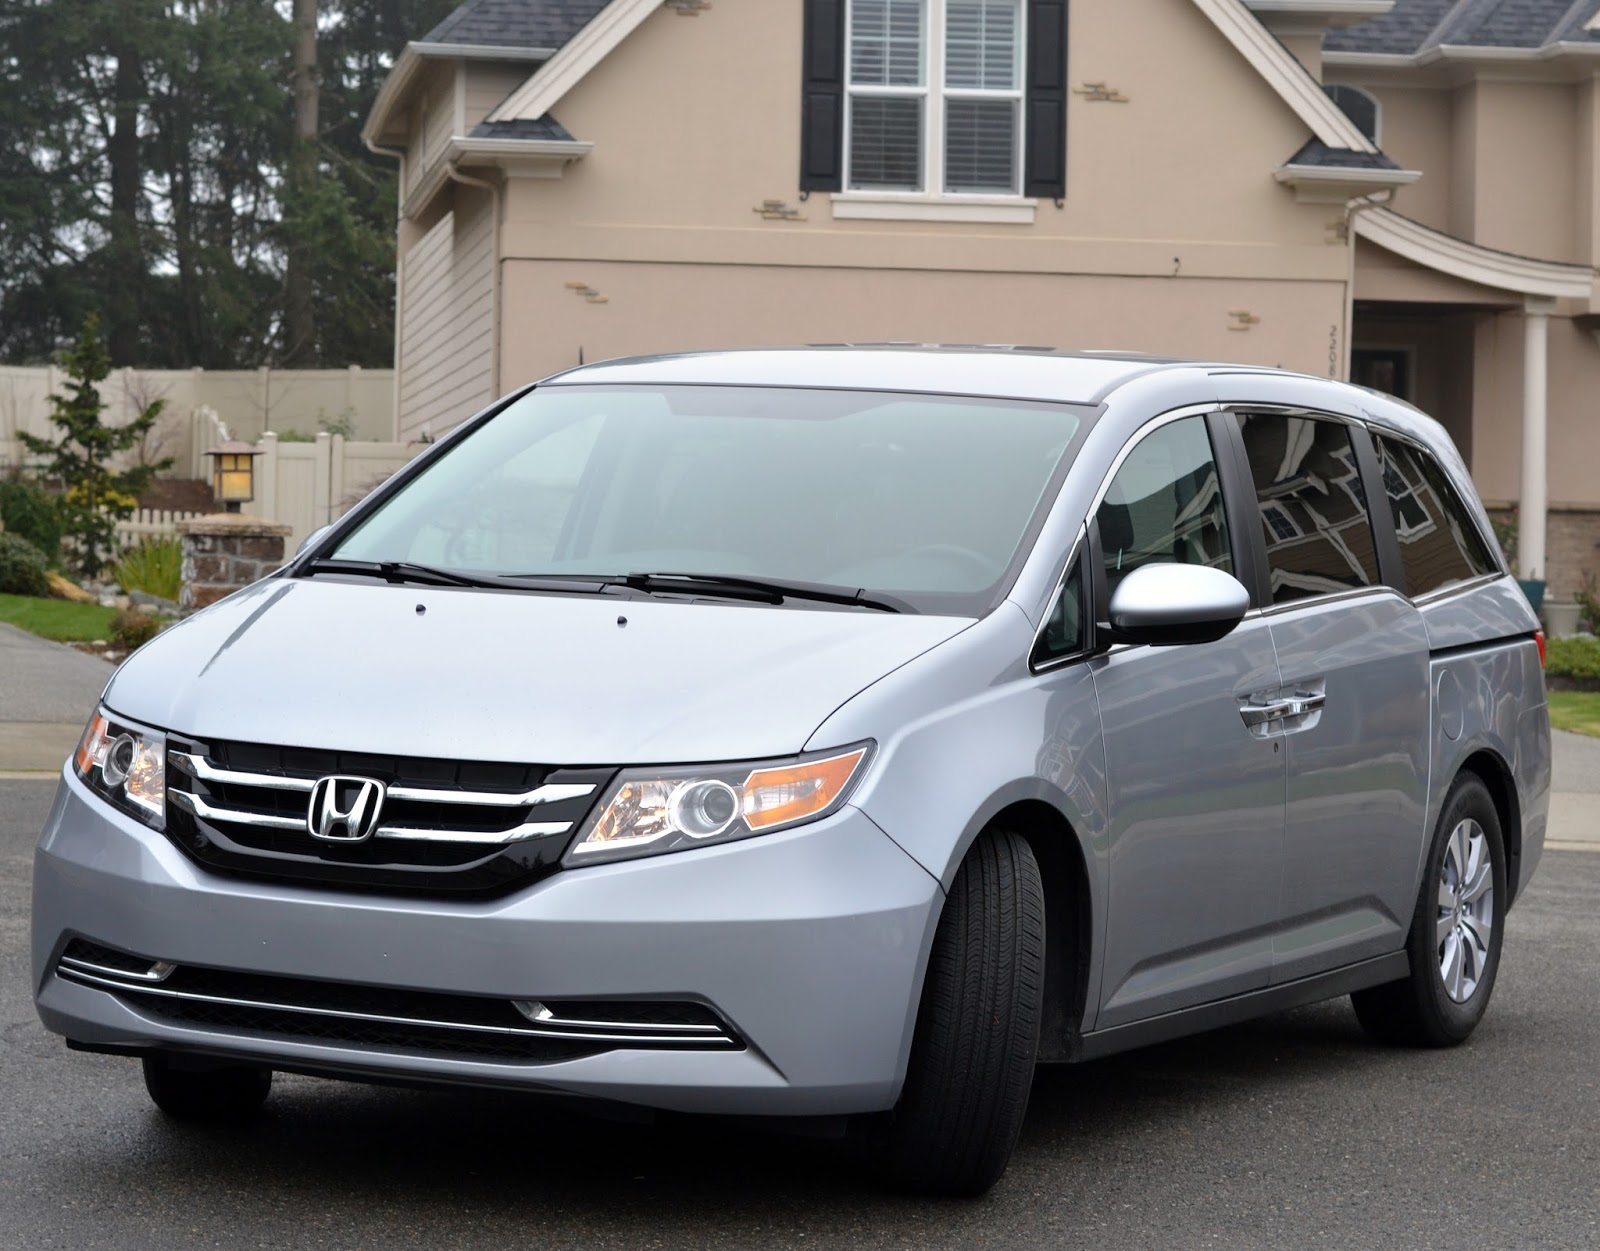 the honda odyssey mini van review rachel teodoro